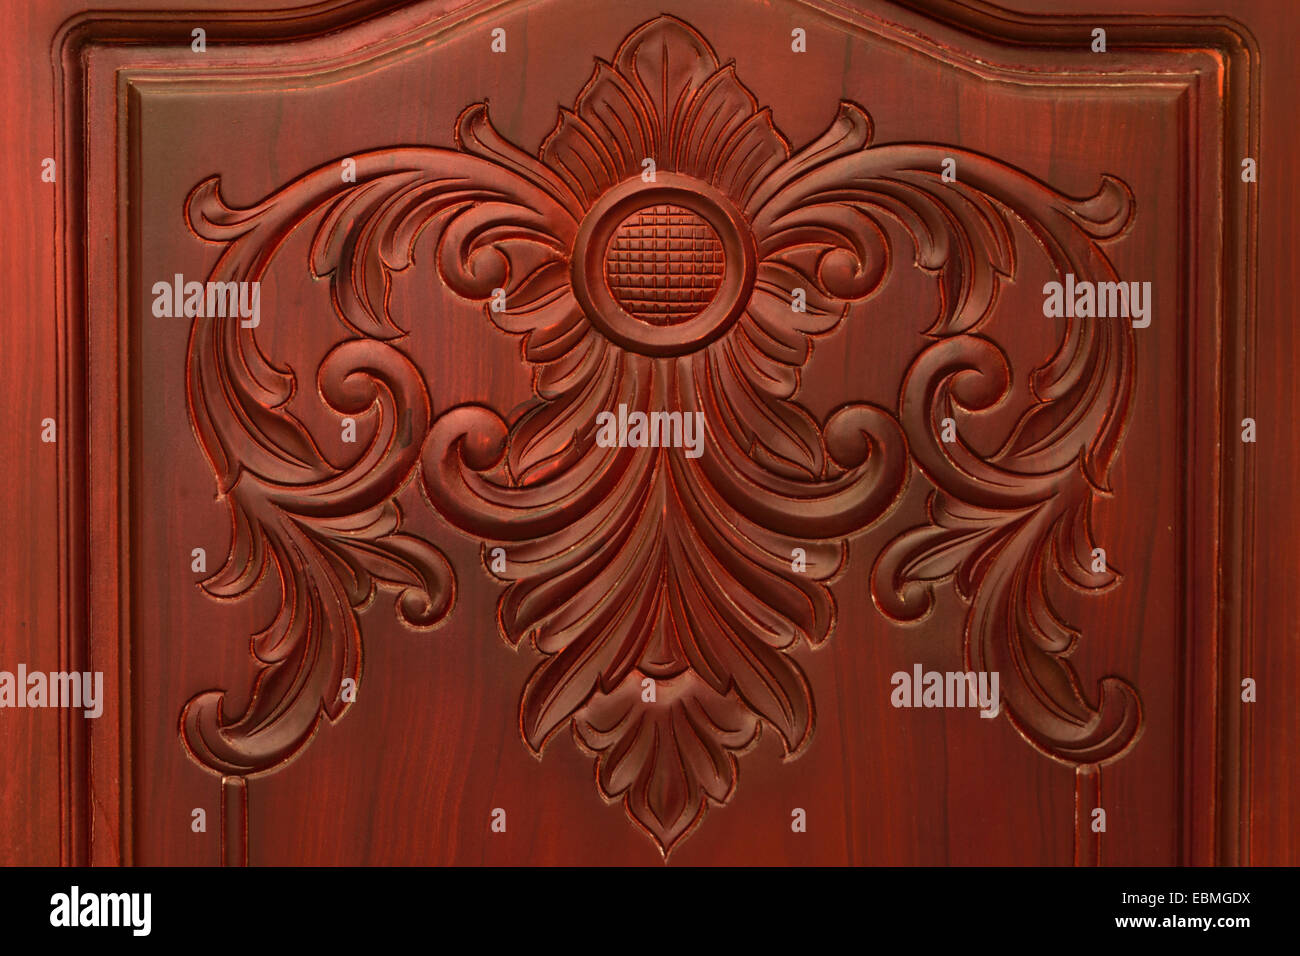 Wood carving stock photo: 76054662 alamy